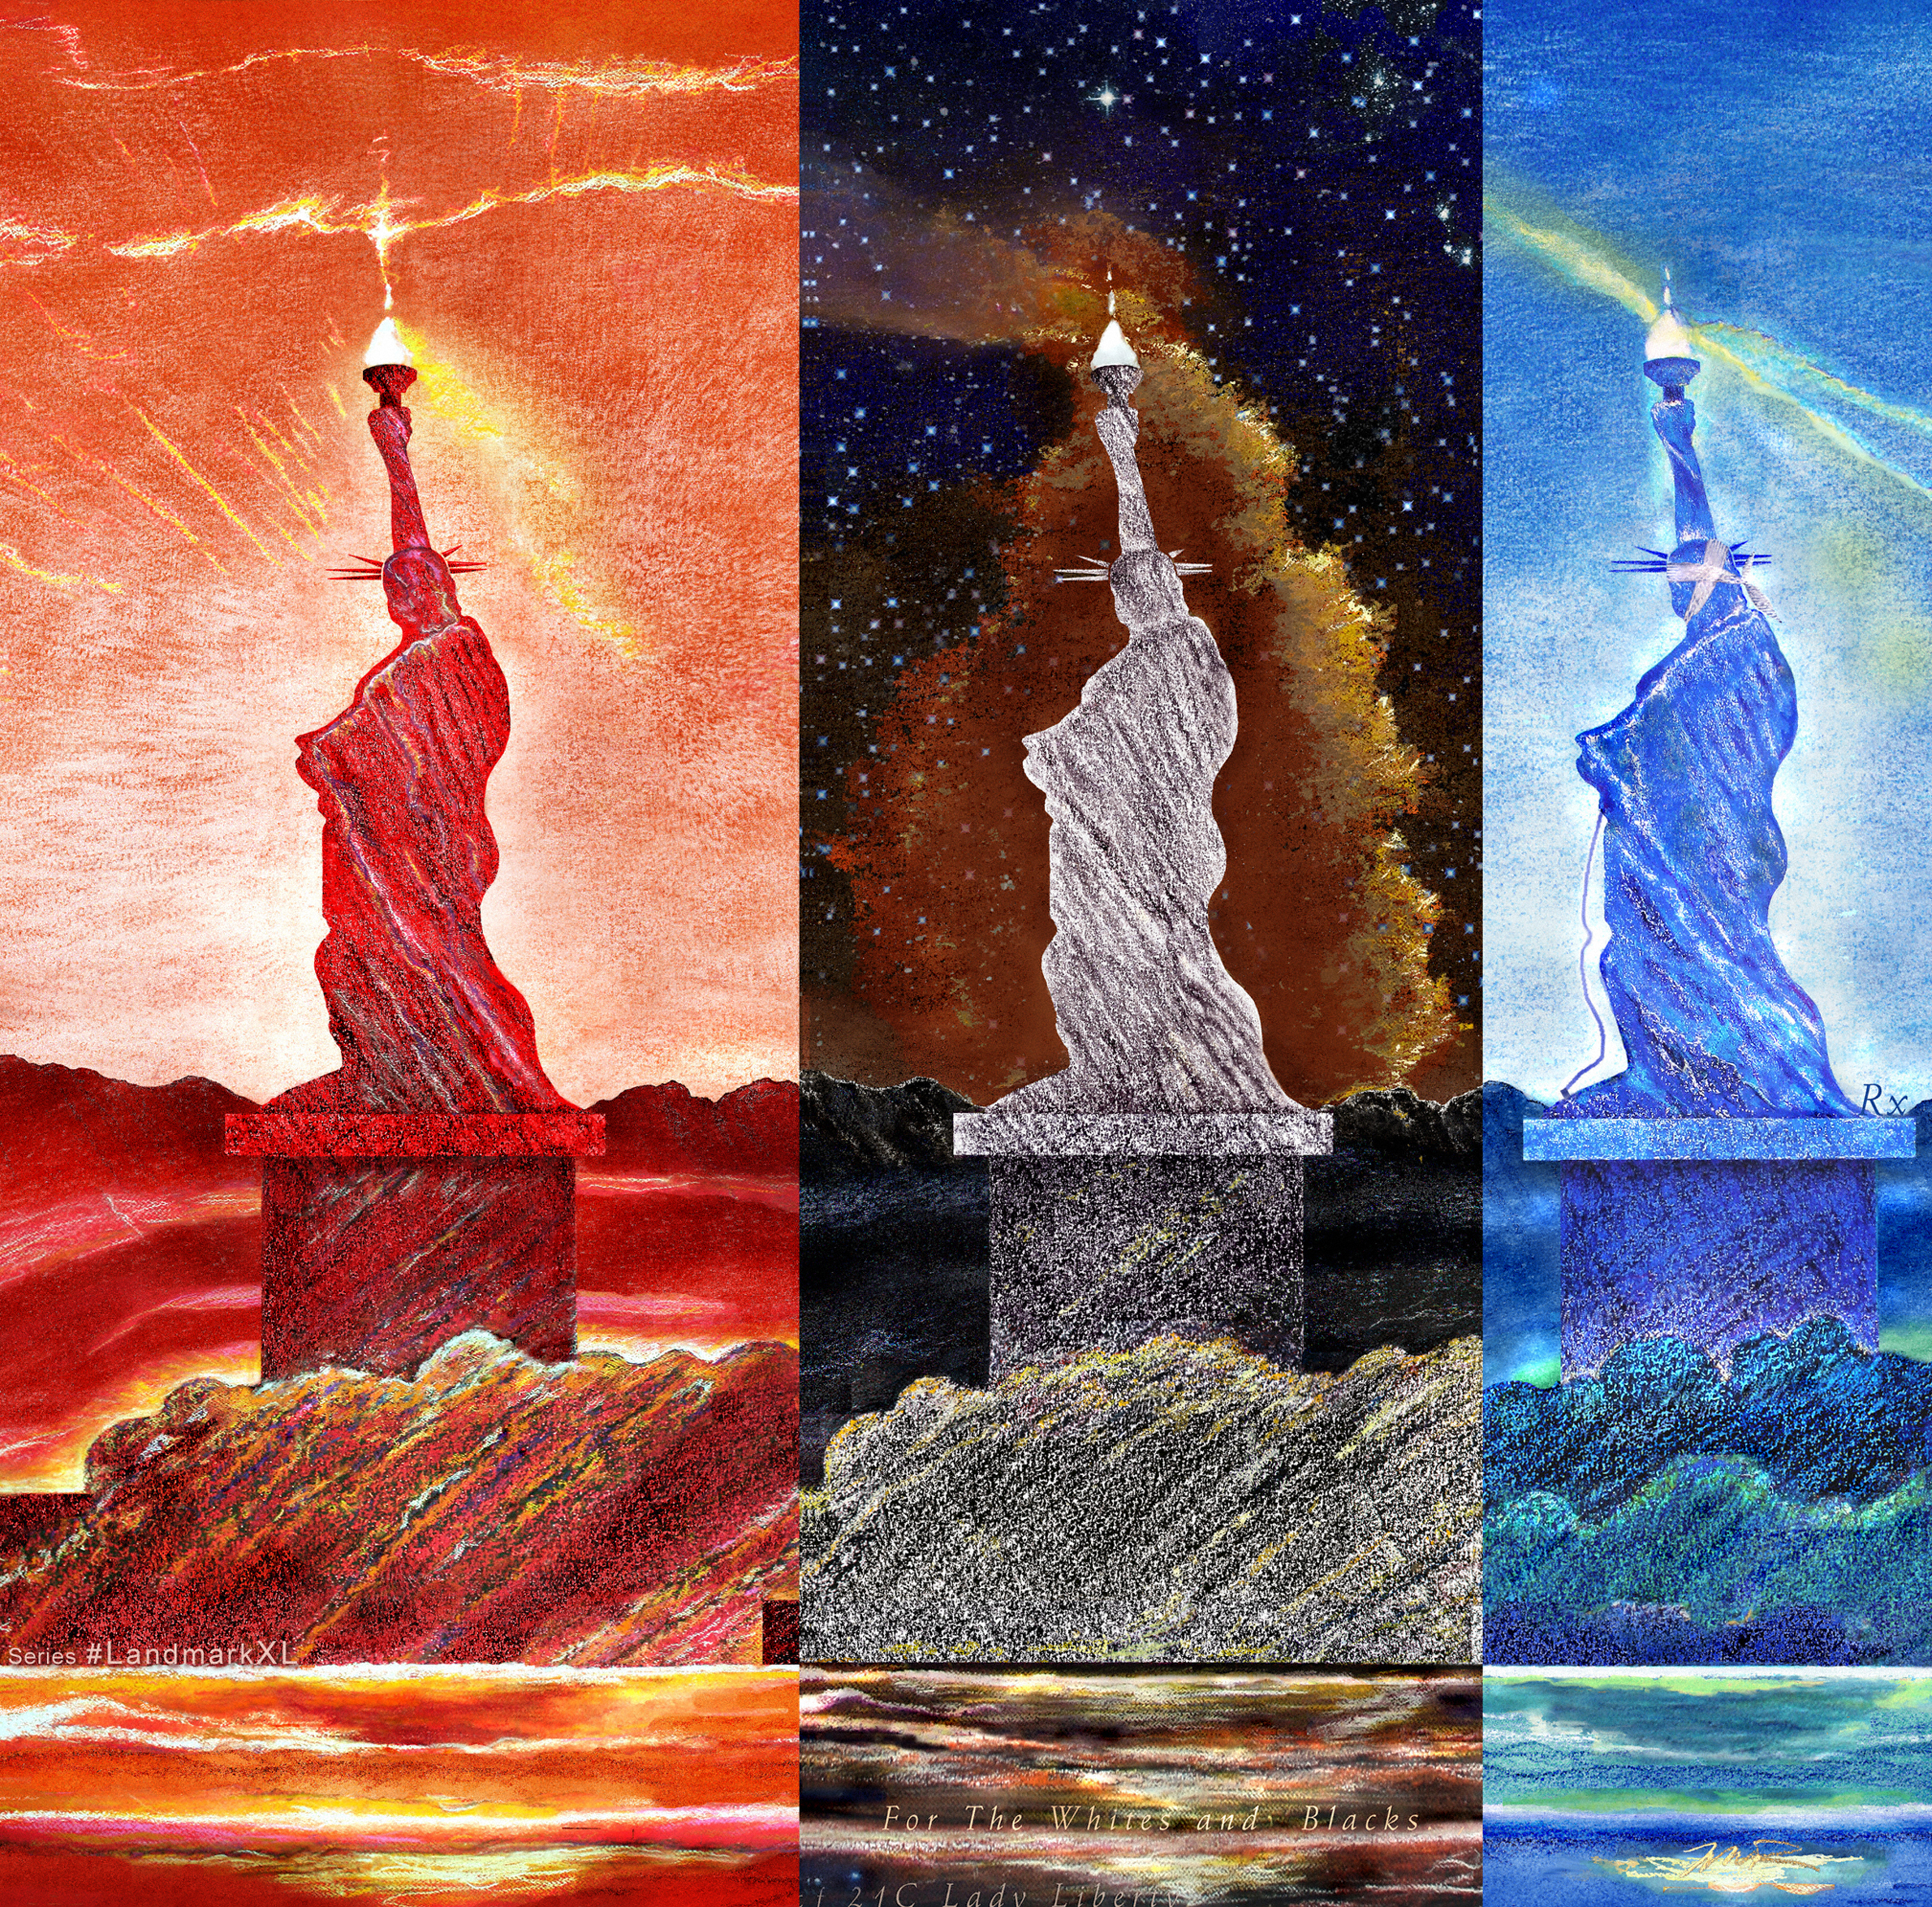 The LANDSCAPE OF 21C LADY LIBERTY Tryptych For The Reds to Yellows, Whites with Blacks, And A Spectrum of Blues_44 x 96in